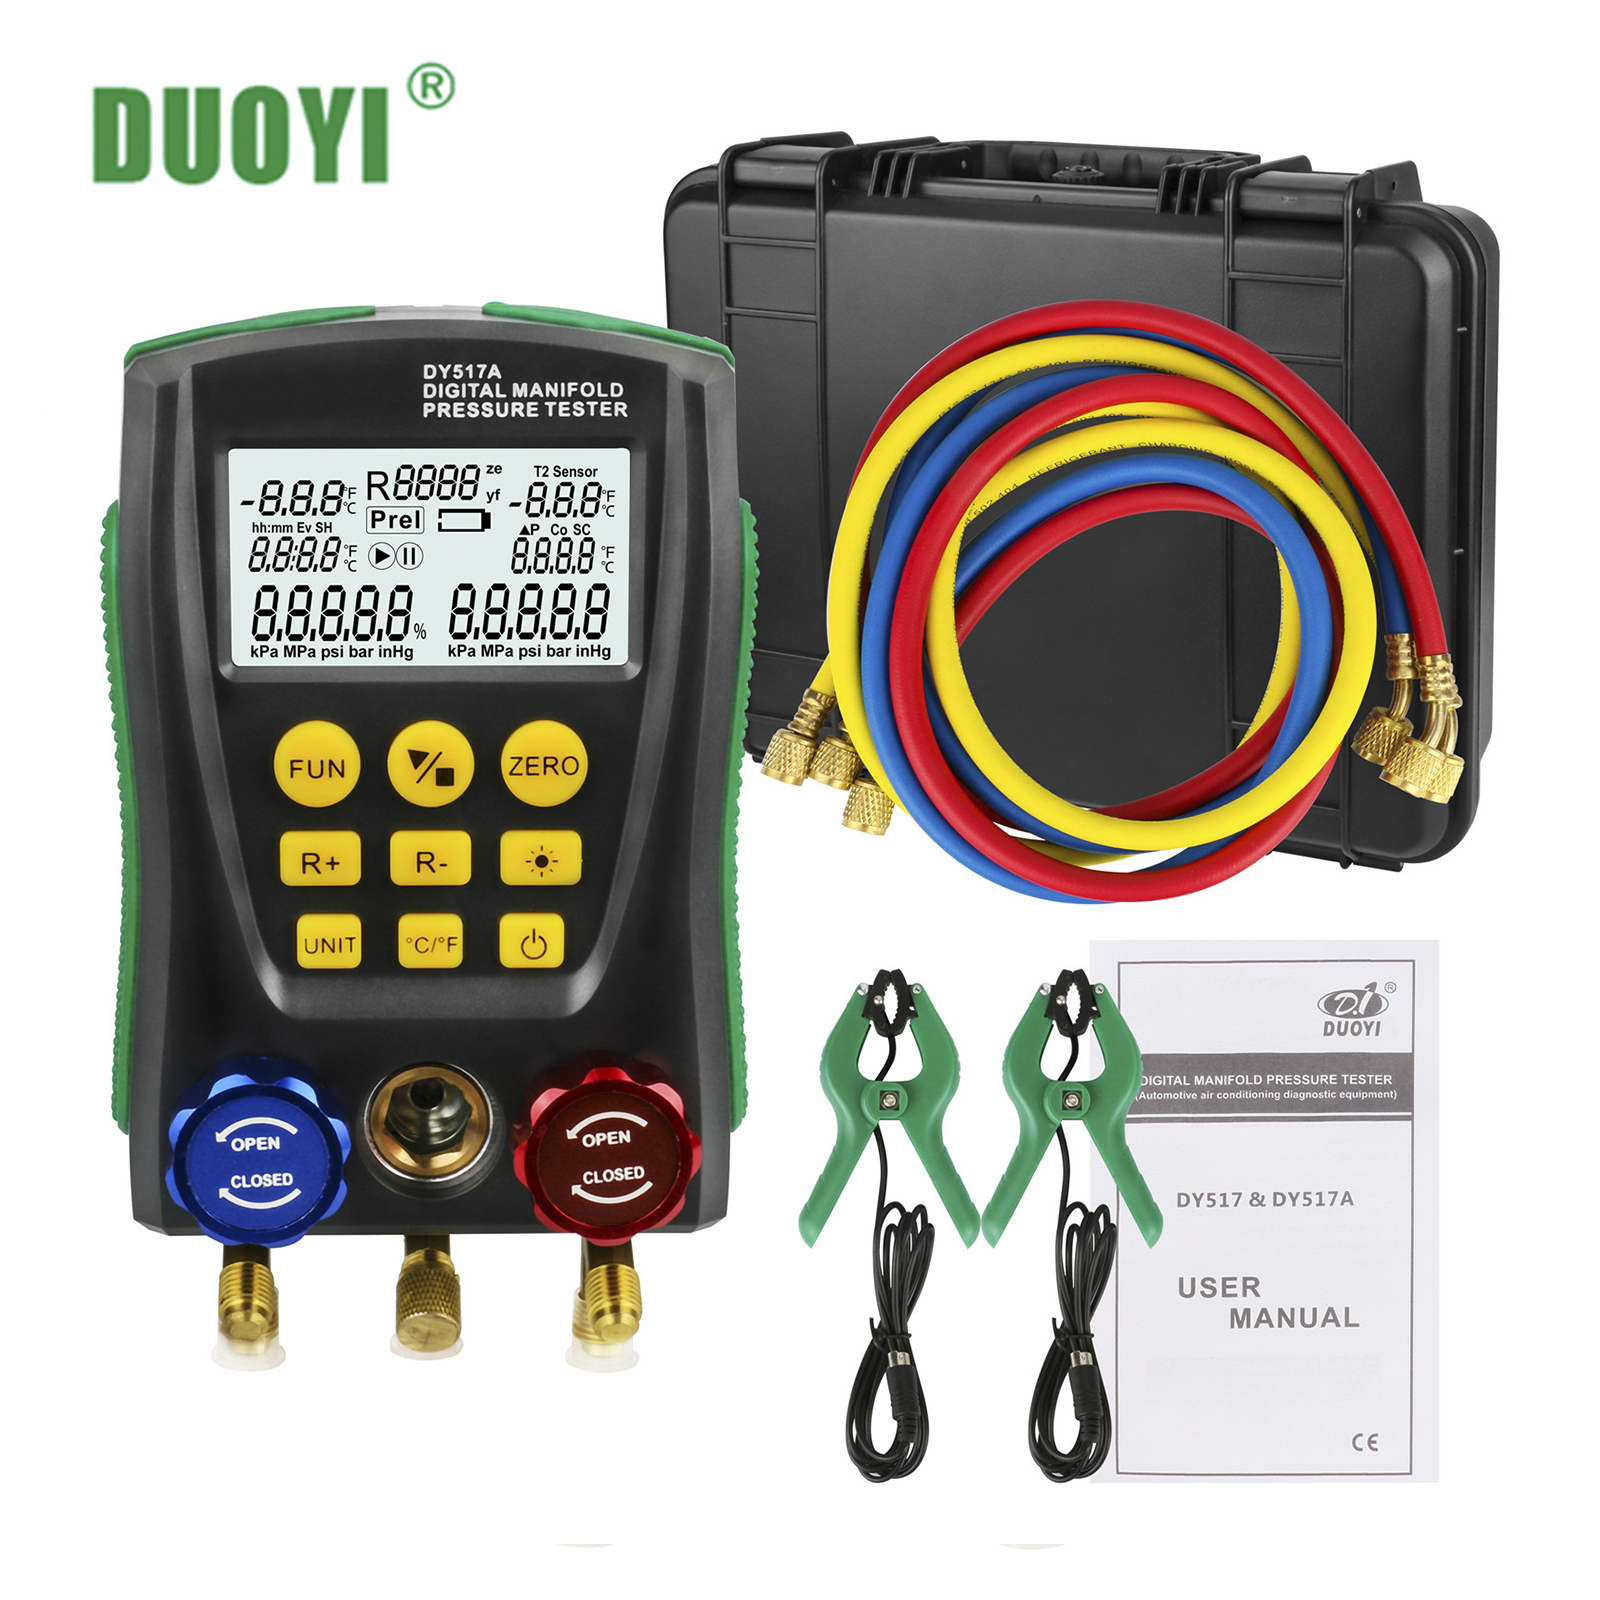 DUOYI Temperature-Meter Refrigeration Manifold-Pressure-Gauge Test-Air-Conditioning R410a